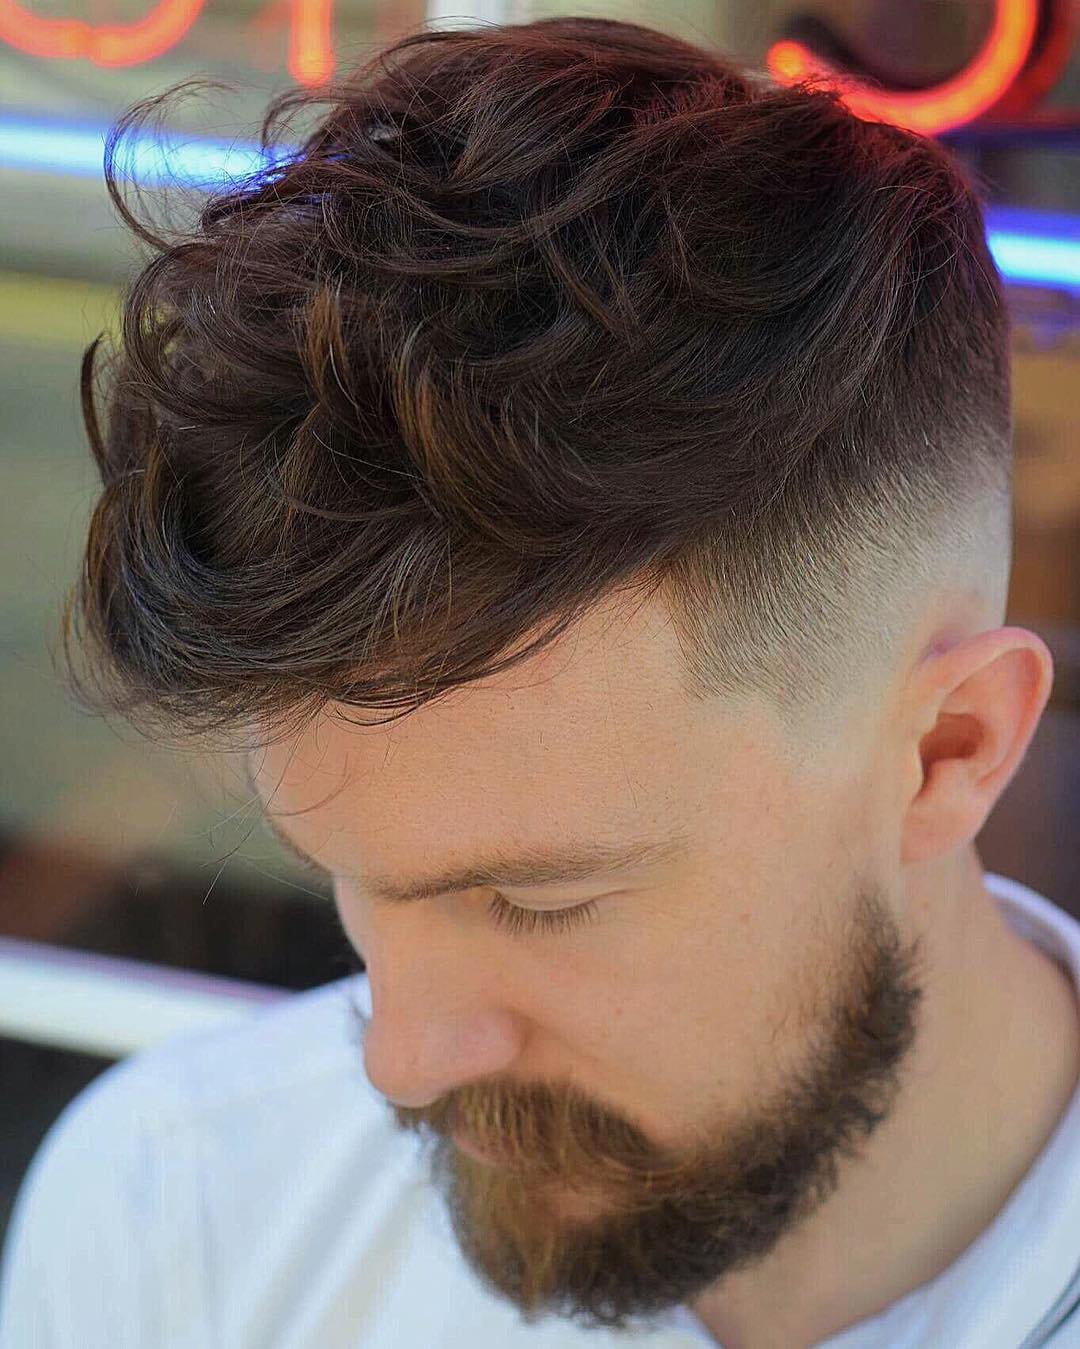 The Best Men's Haircuts To Get In 2019 - image toastiestyles-Johnnys-Chop-Shop-mens-haircuts-2017-texture-fade on https://alldesingideas.com